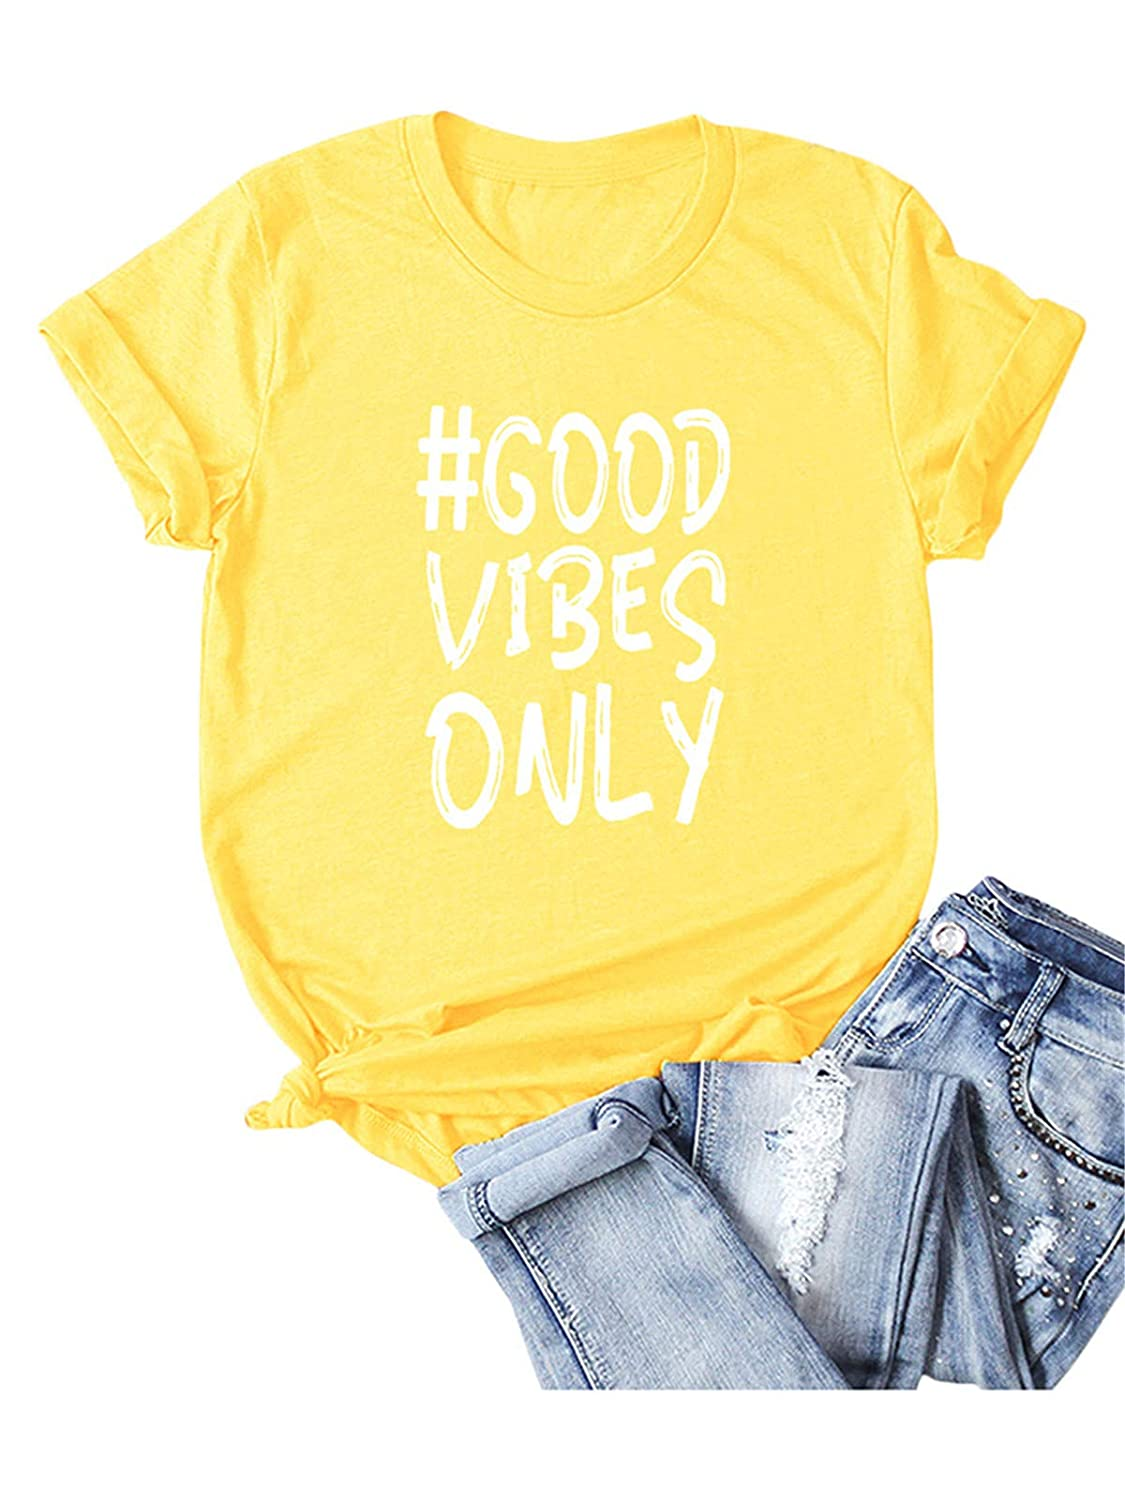 Festnight Good Vibes Only Shirts for Women Casual Manica Corta Lettera Stampa Cute Funny Graphic Tees Shirt Top